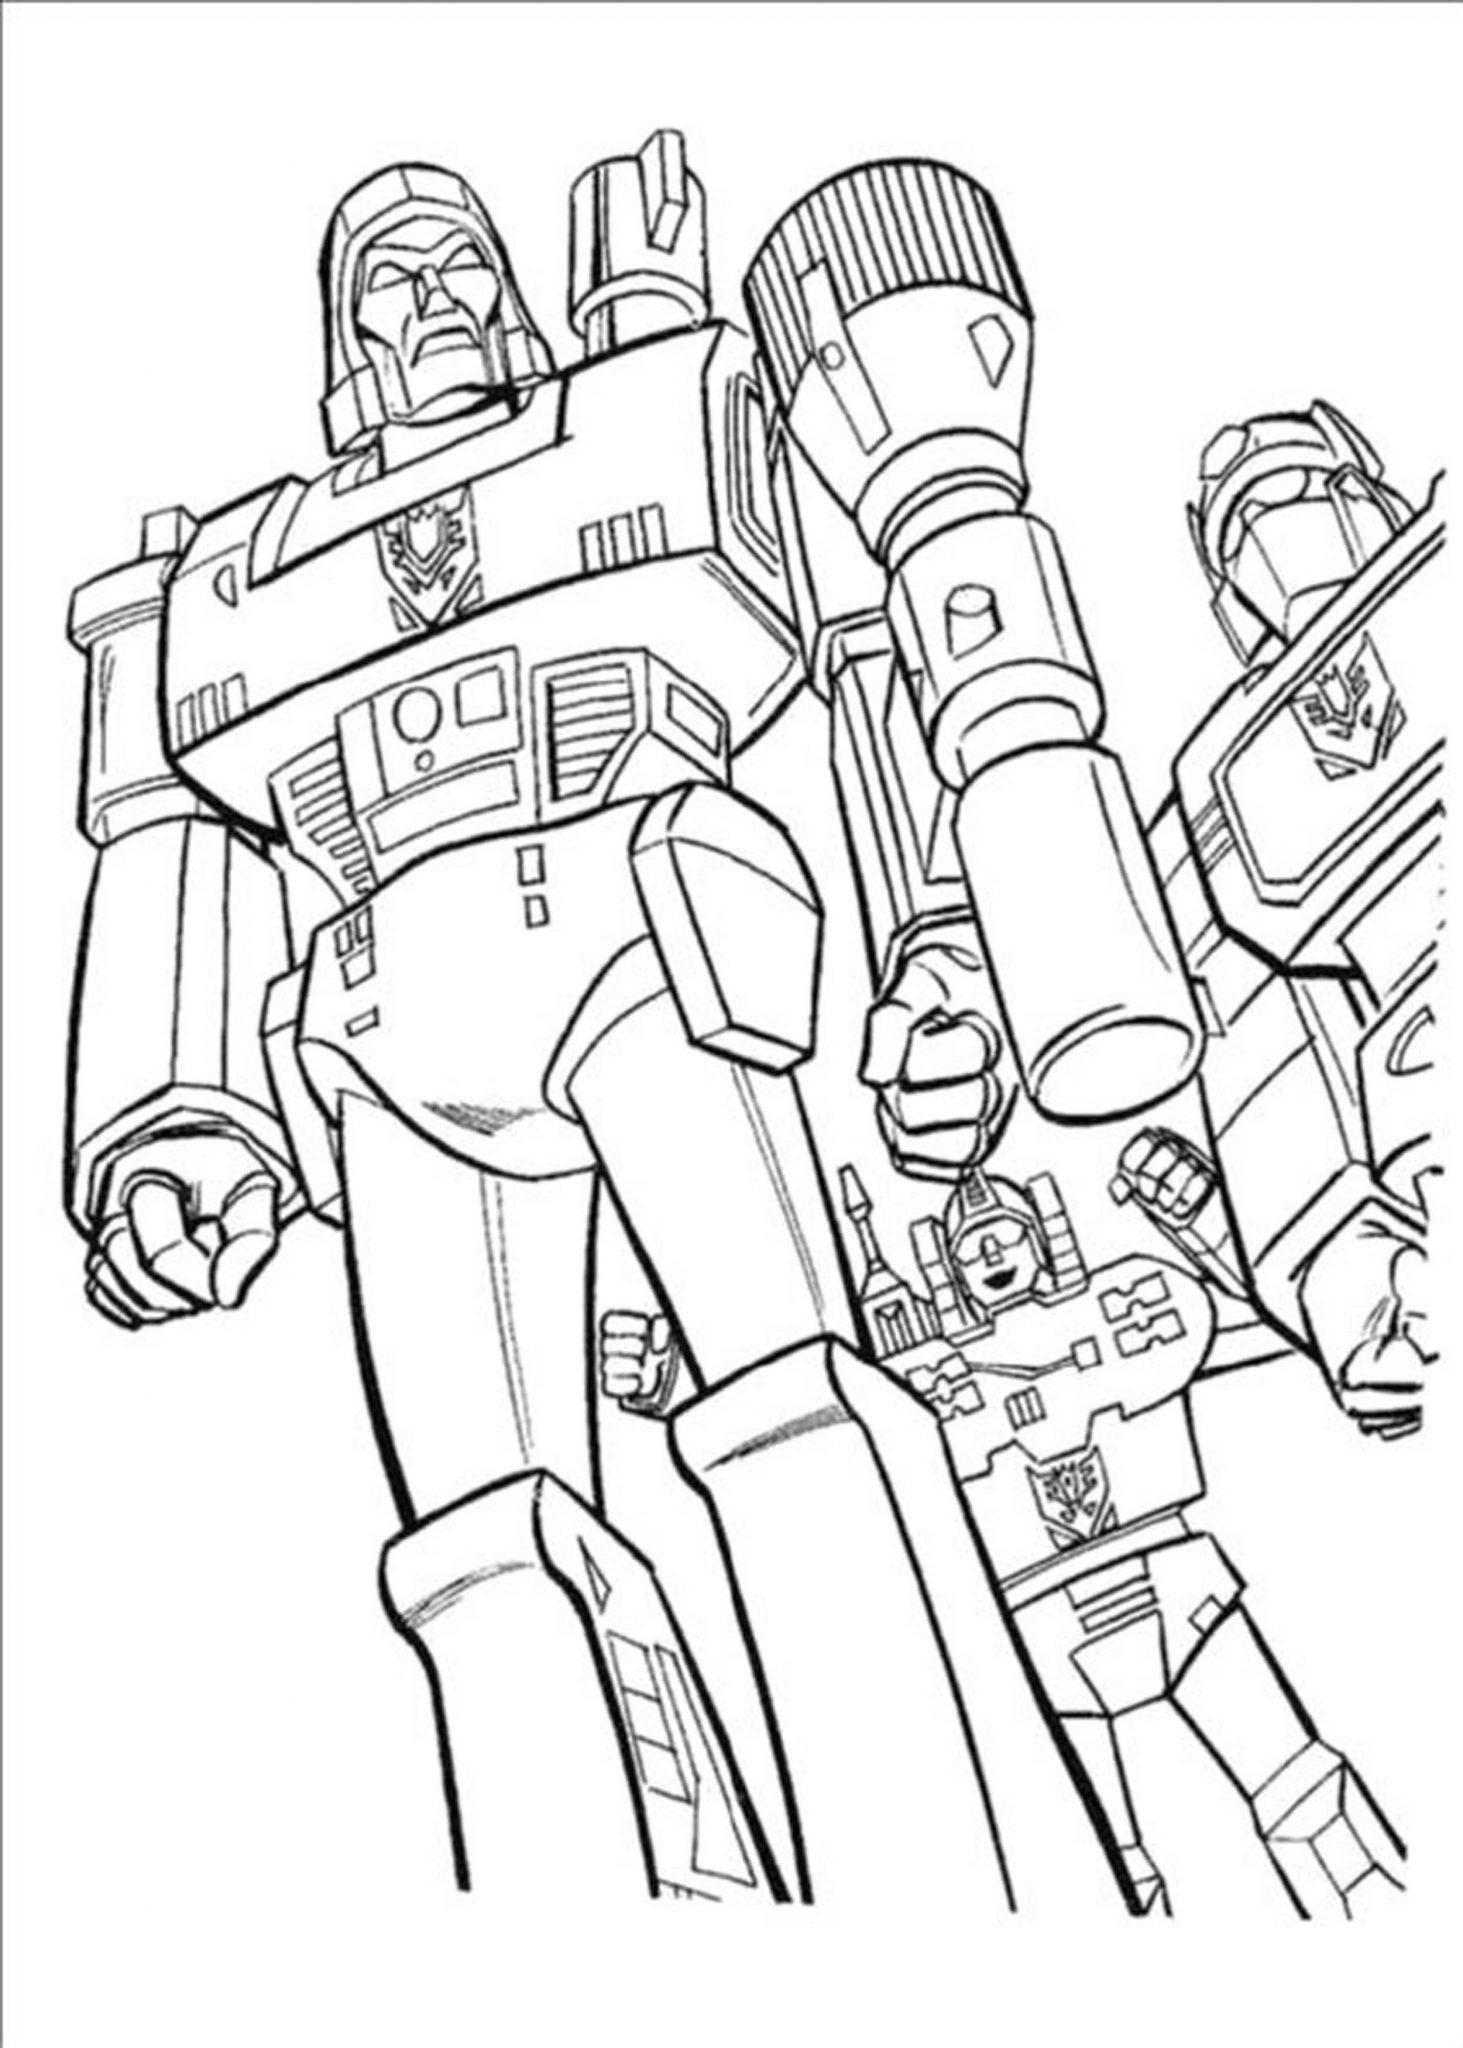 image about Transformers Printable Coloring Pages known as Print Obtain - Inviting Little ones towards Do the Transformers